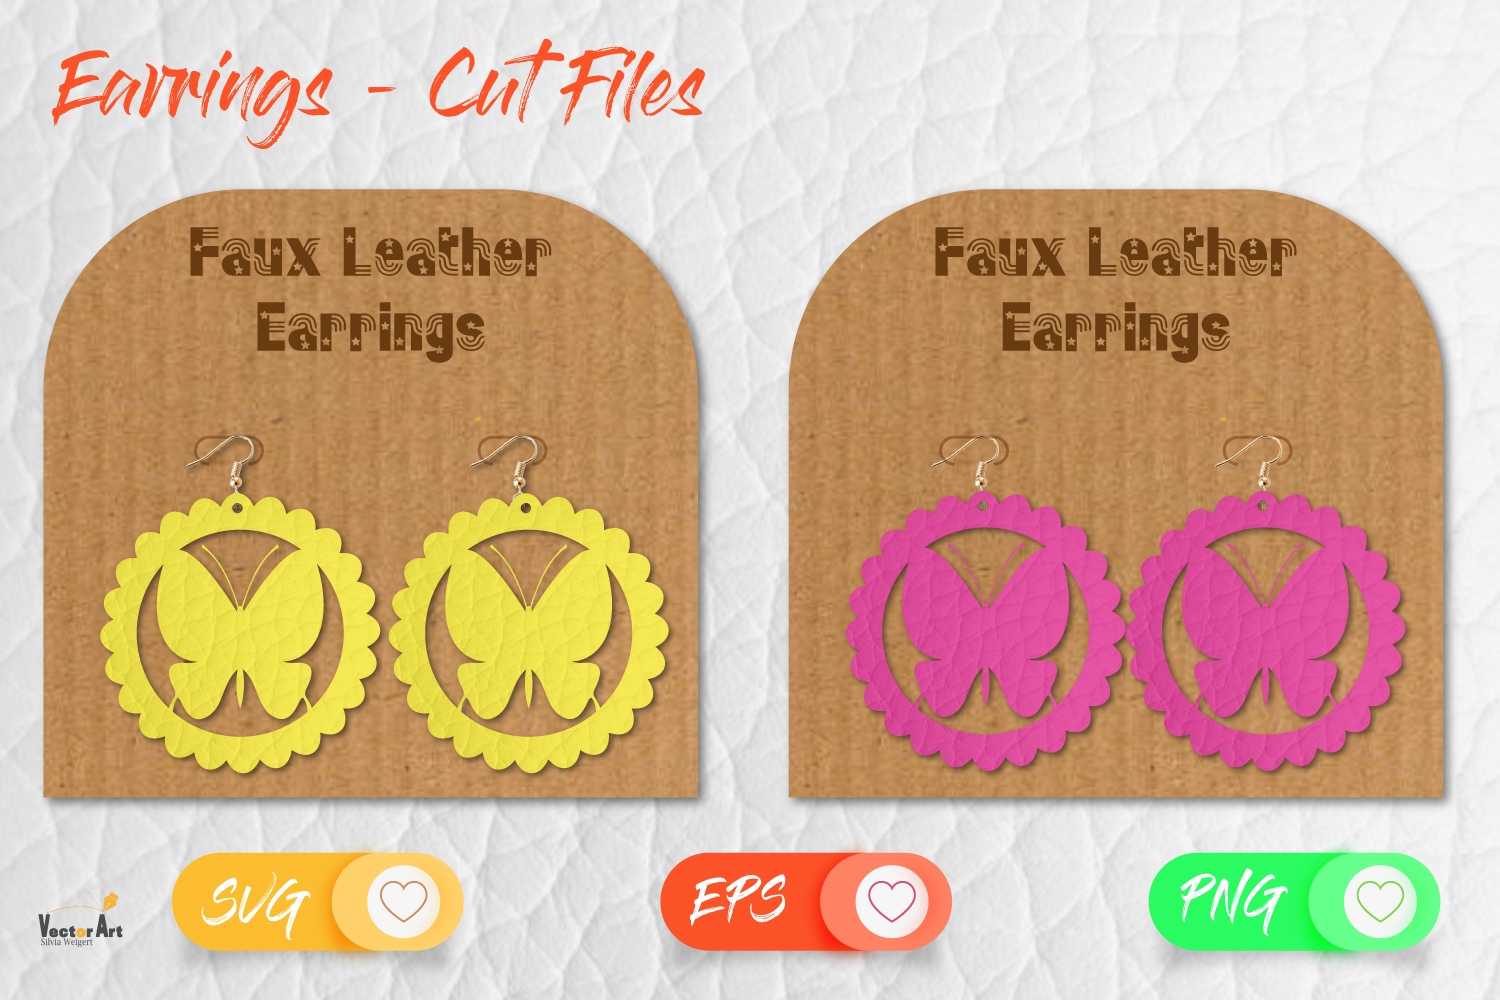 5 Earrings - Mini Bundle - Cut files example image 7